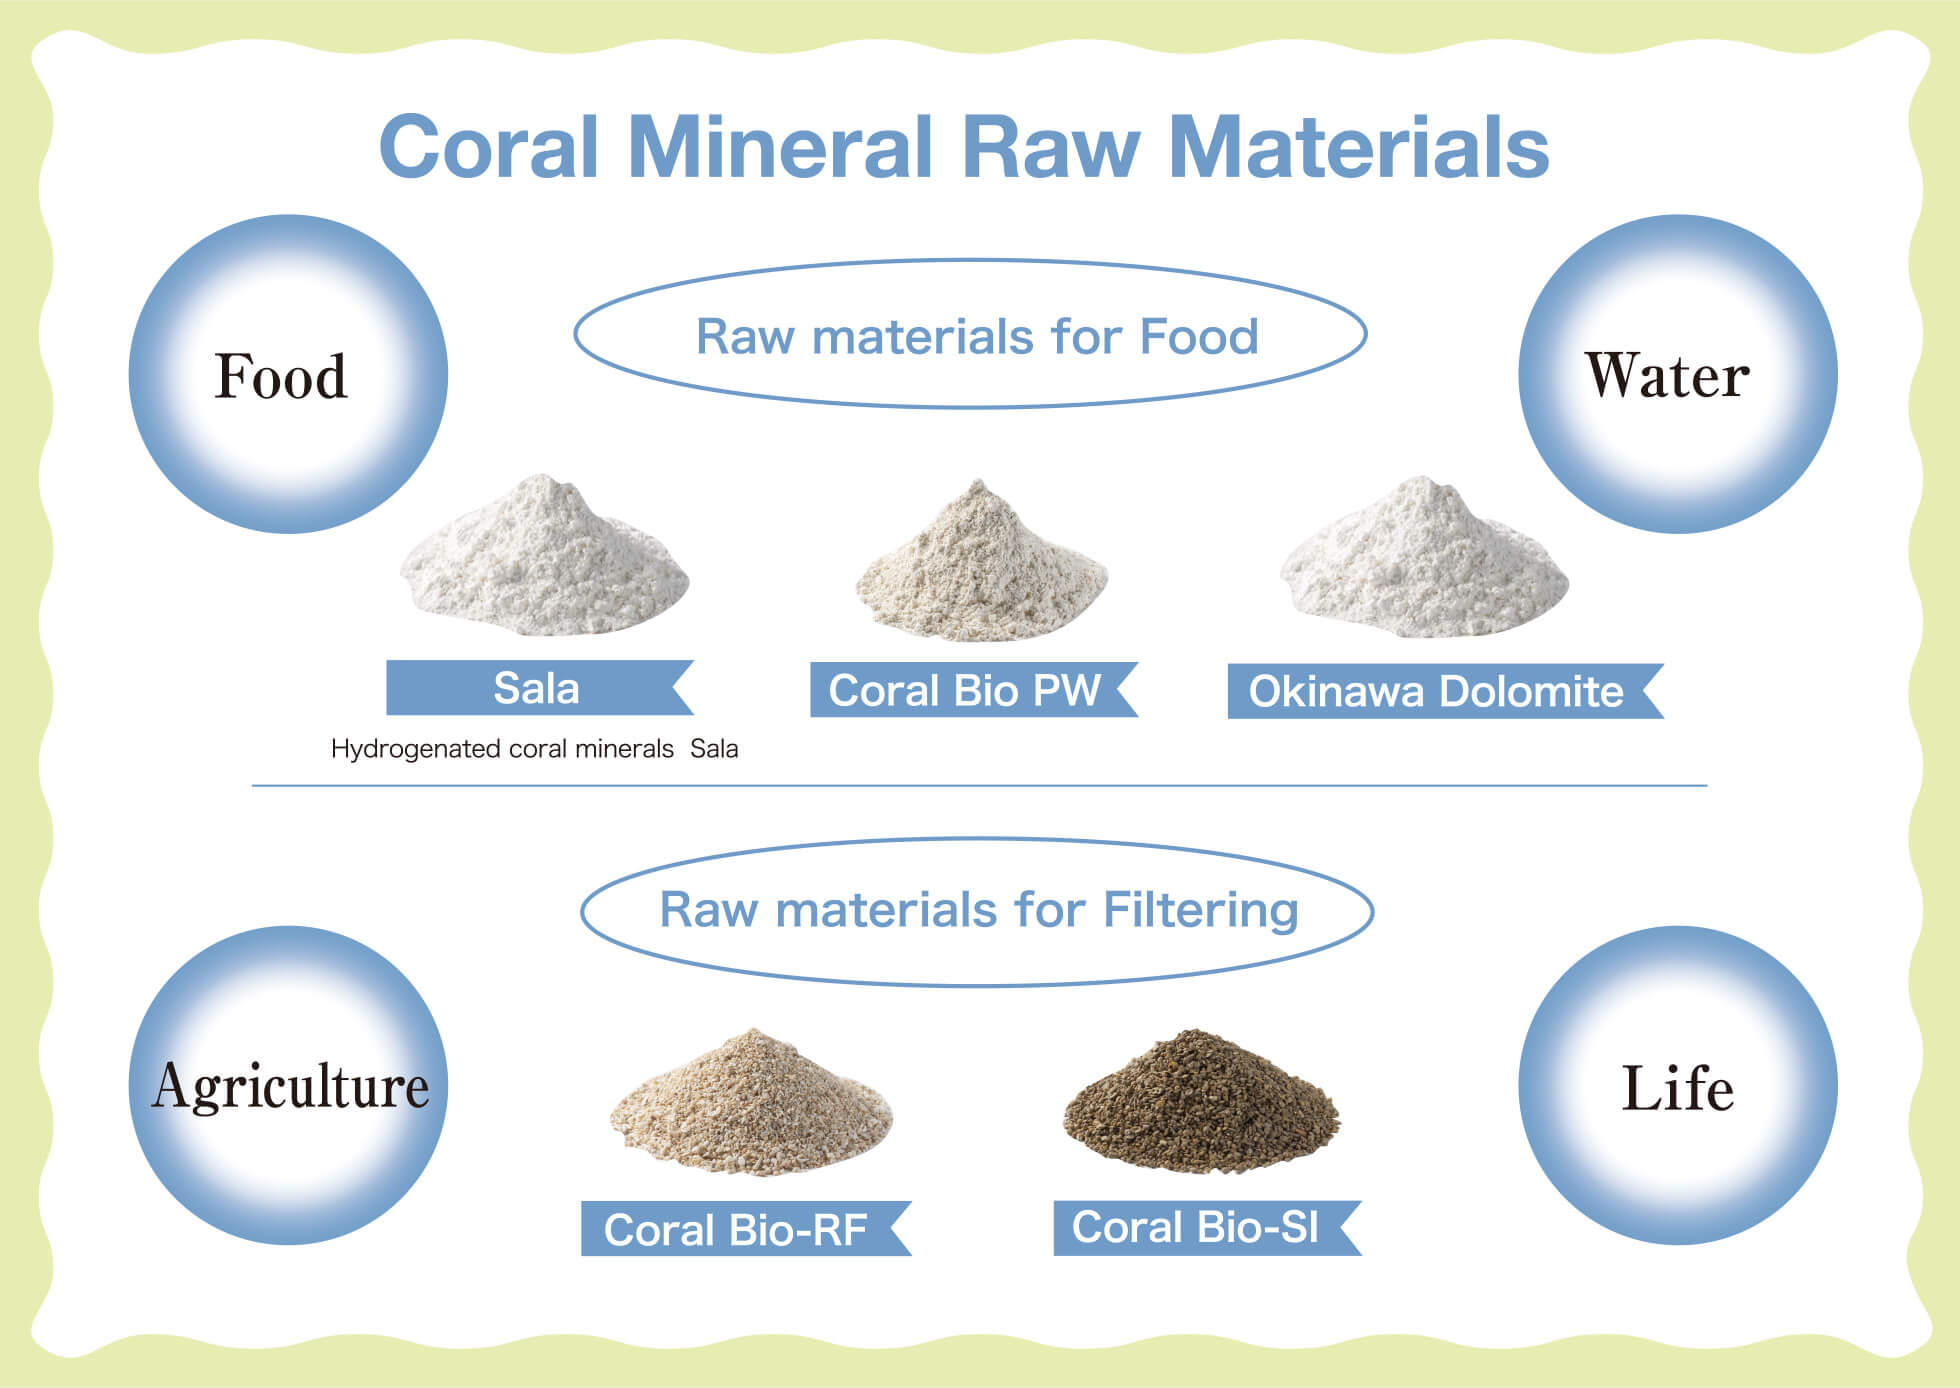 Coral Mineral Raw Materials